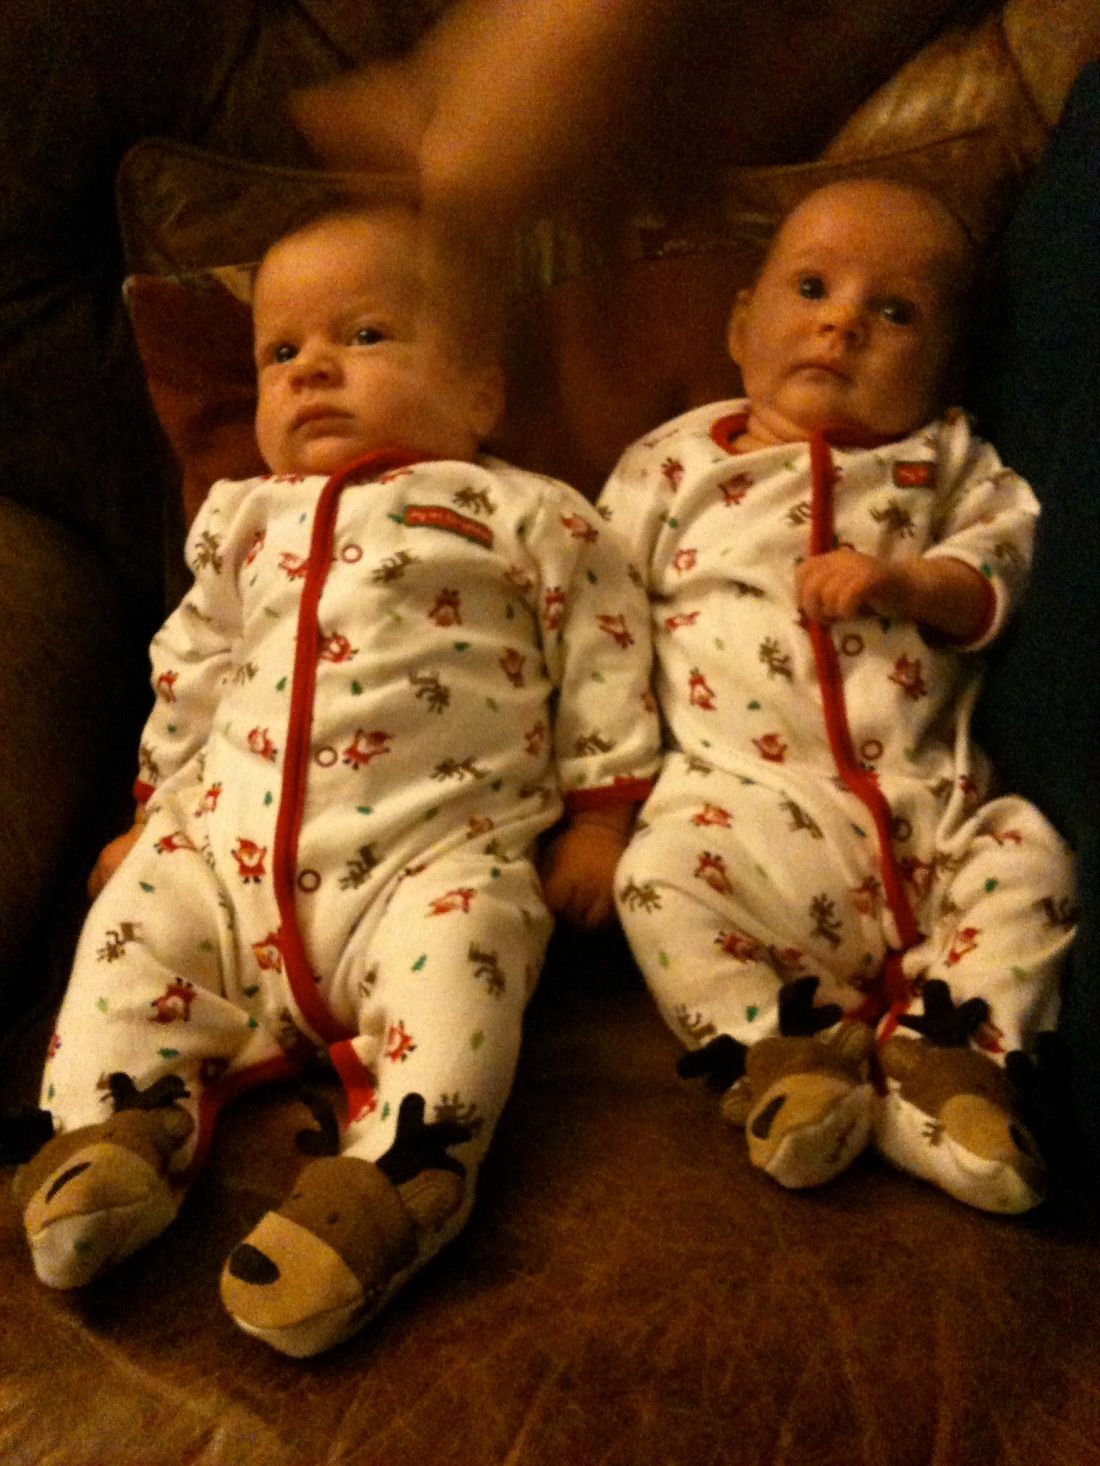 Their first christmas